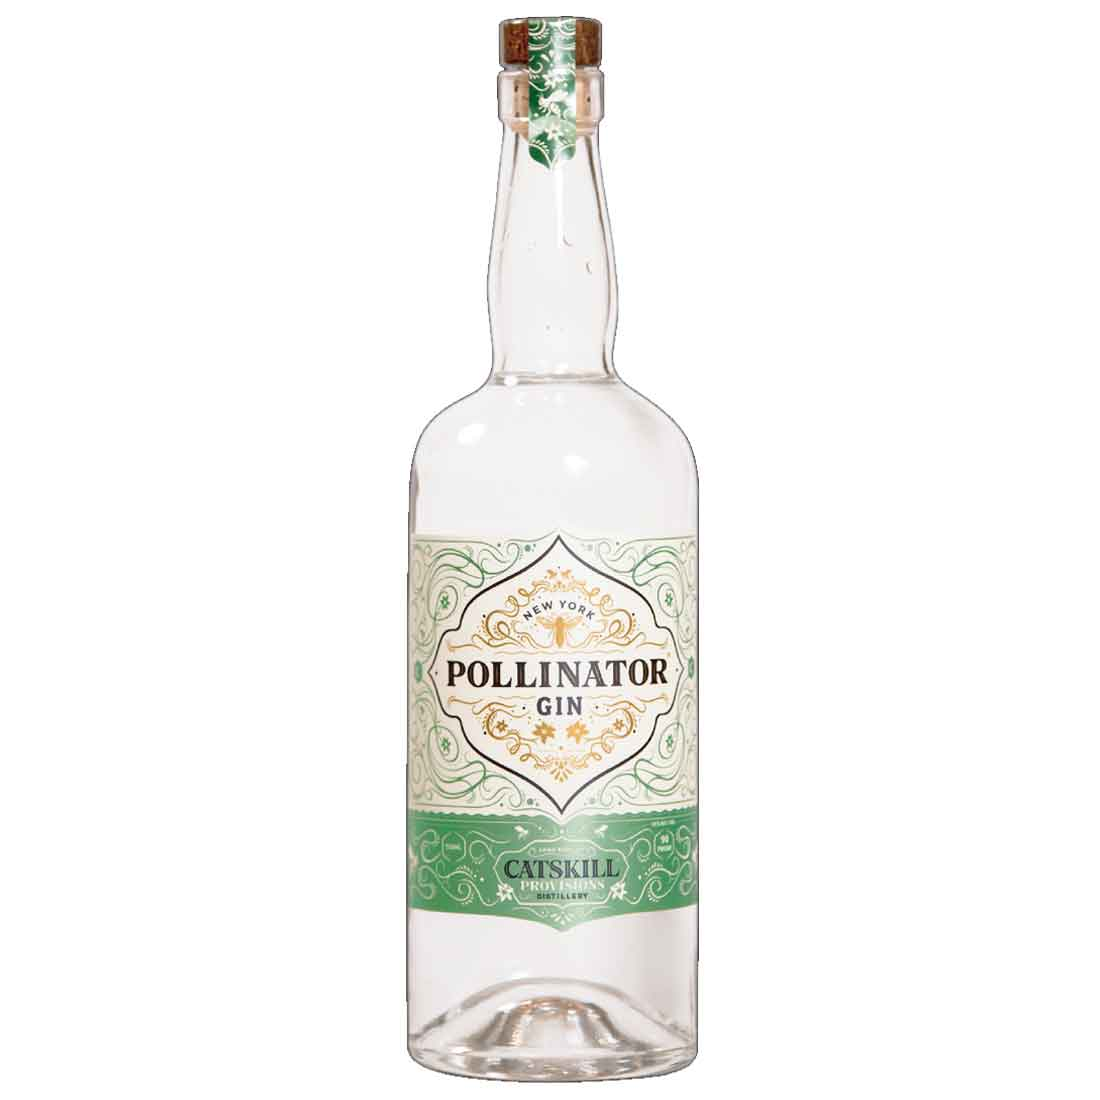 NY Pollinator Gin 375or 750 mL